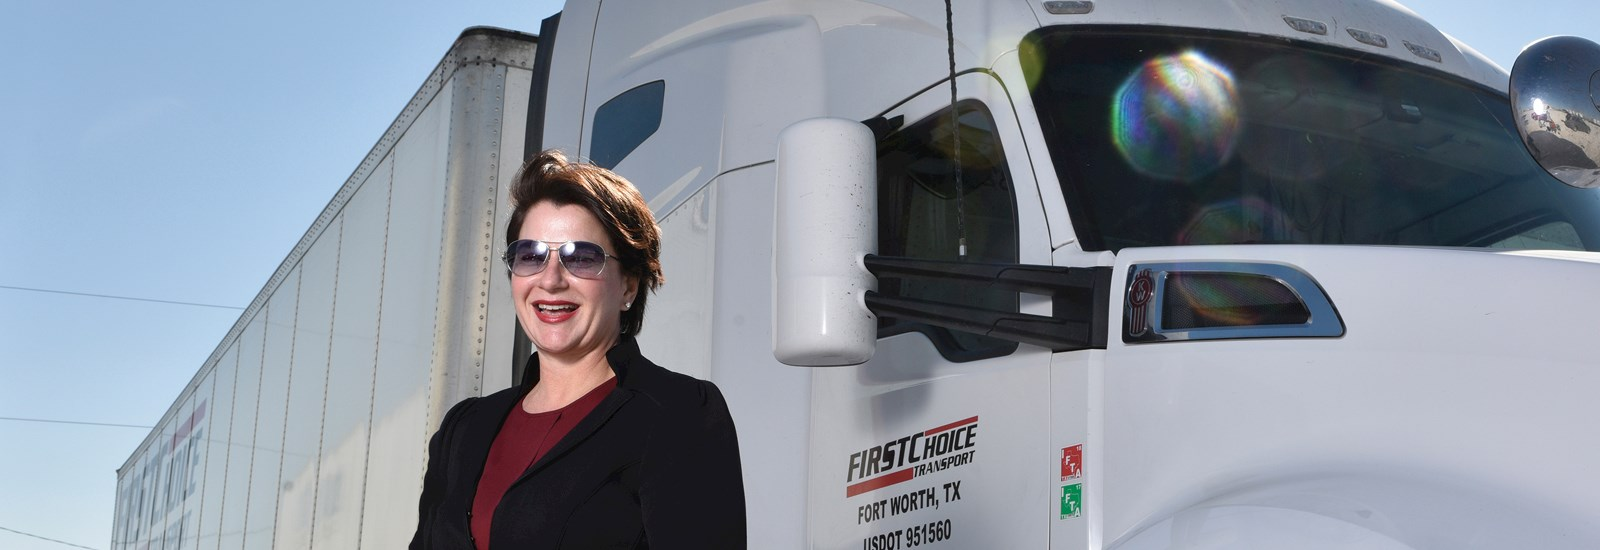 Photo of Carla Luig, CEO of First Choice Transport